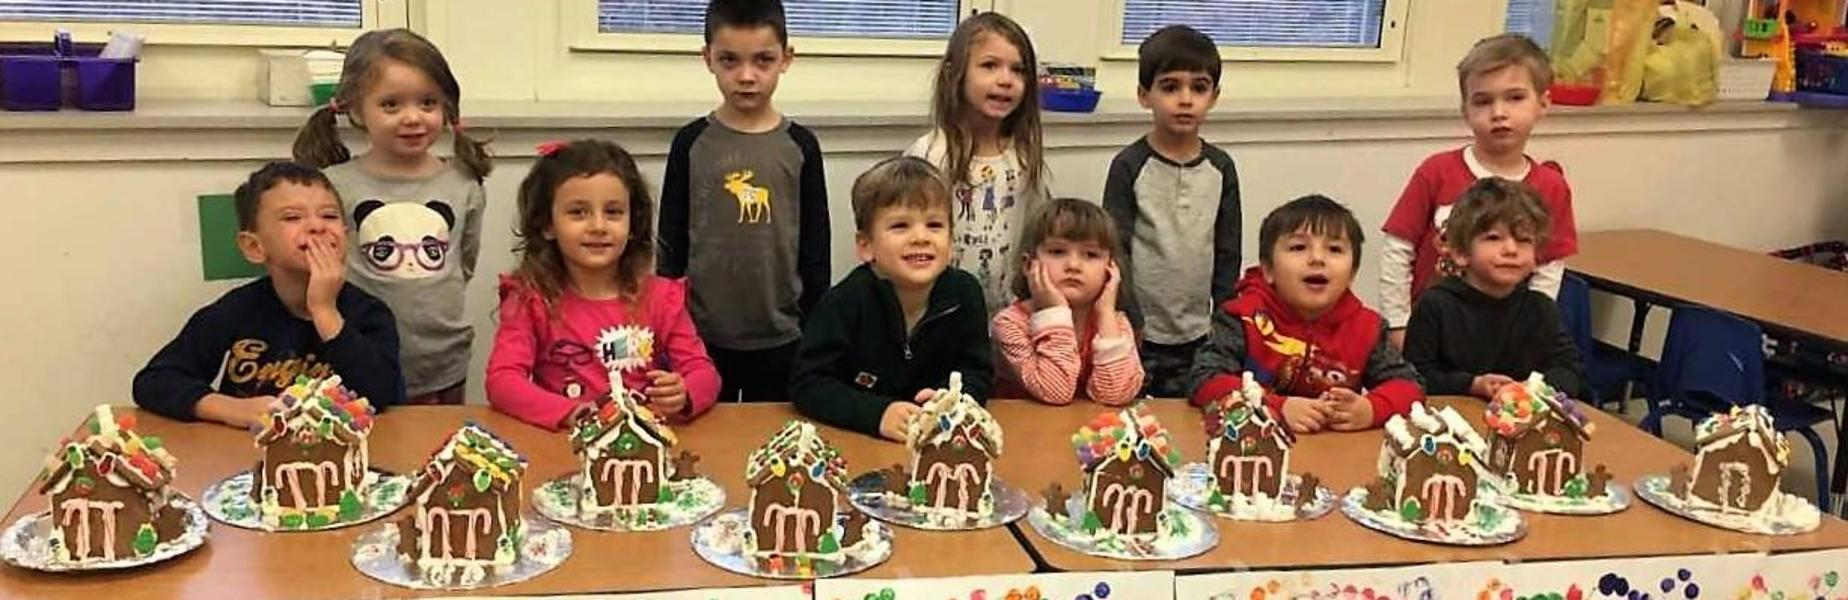 Lincoln School students display gingerbread houses they made in class for the season.